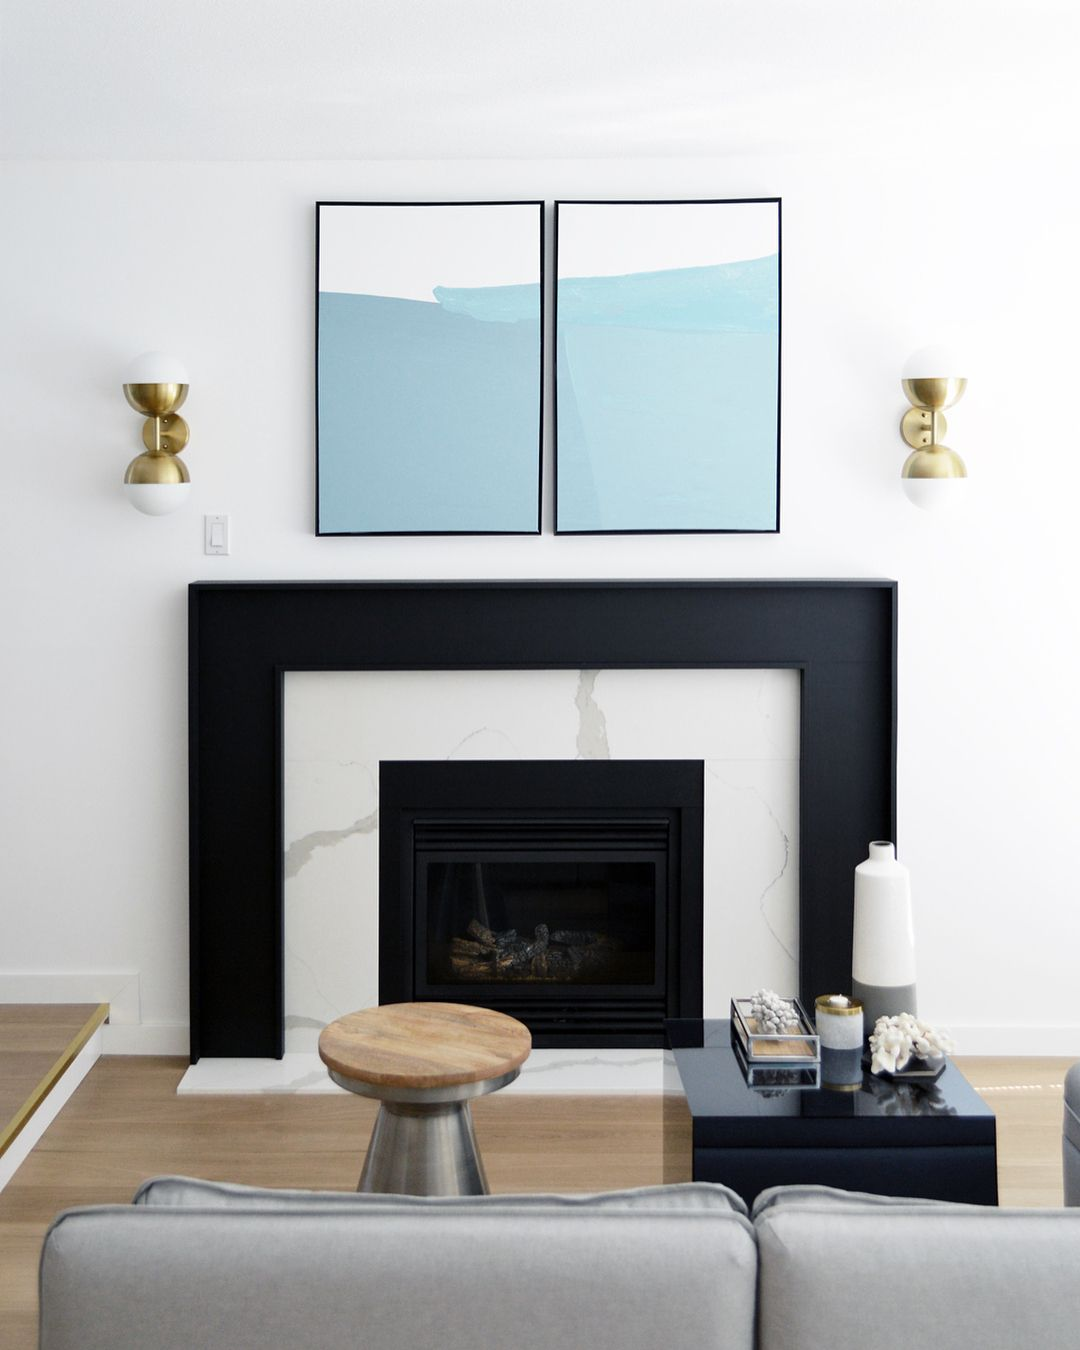 Modern Black And Marble Fireplace Flanked By Brass Sconces With Minimal Turquoise Artwork Modern Fireplace Mantles Boho Living Room Decor Sconces Fireplace